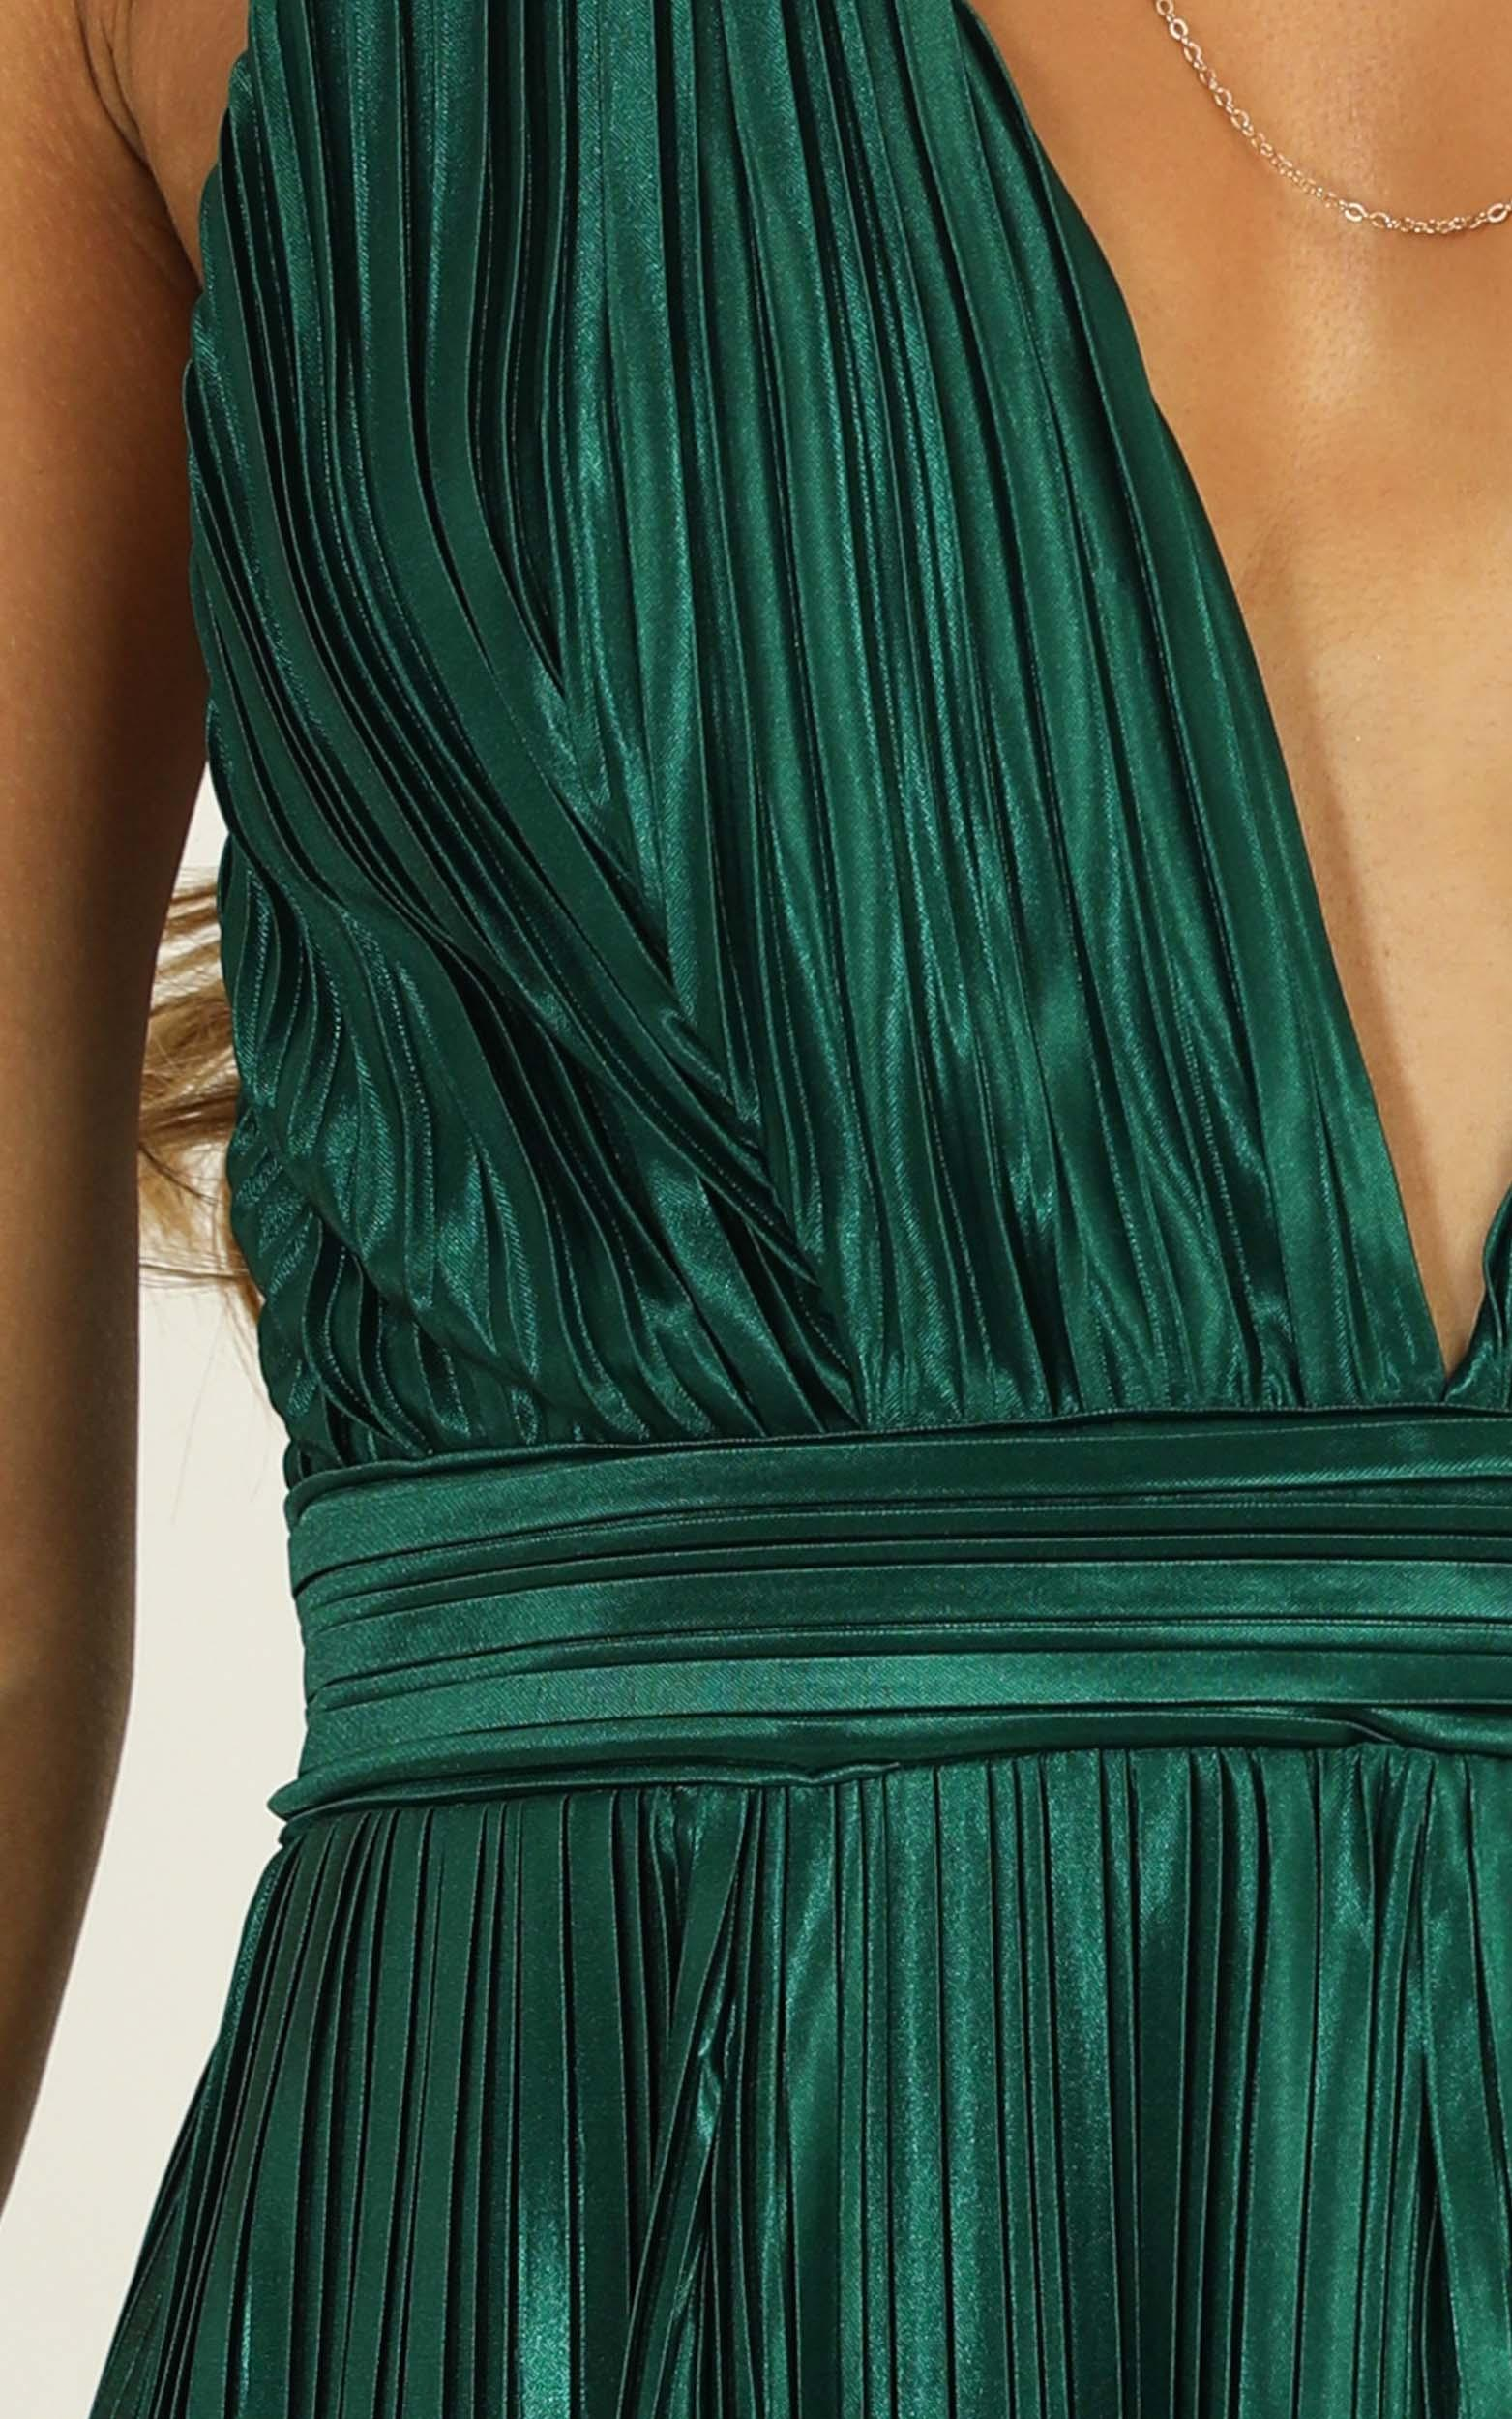 Dance With You Pleated Maxi Dress in emerald green - 12 (L), Green, hi-res image number null